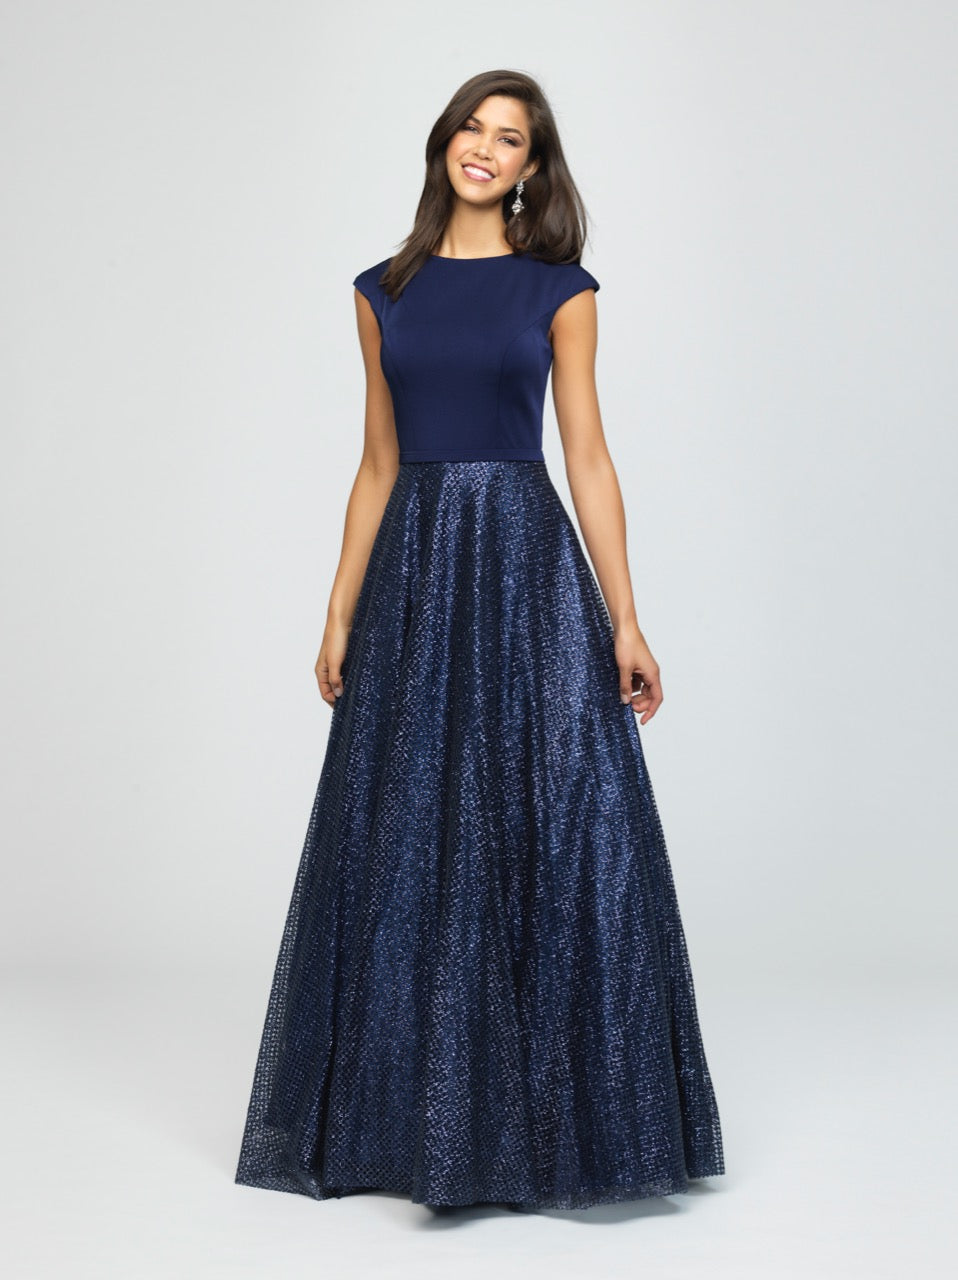 madison james 19-250M navy modest prom dress with sleeves ball gown sparkle cheap plus size